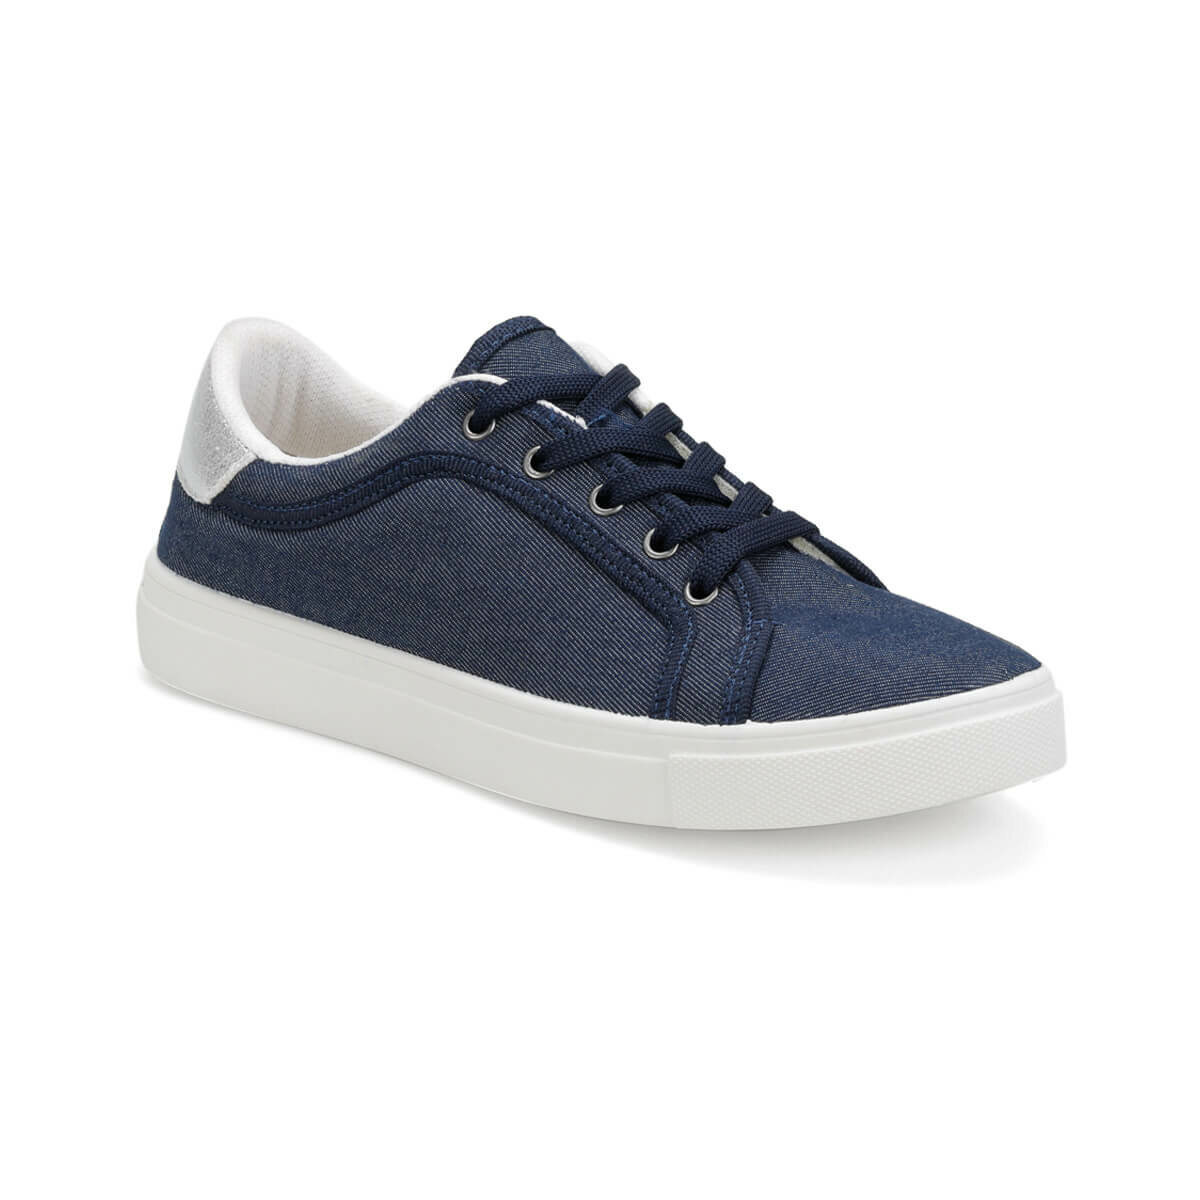 FLO CS19012 Blue Women 'S Sneaker Shoes Art Bella